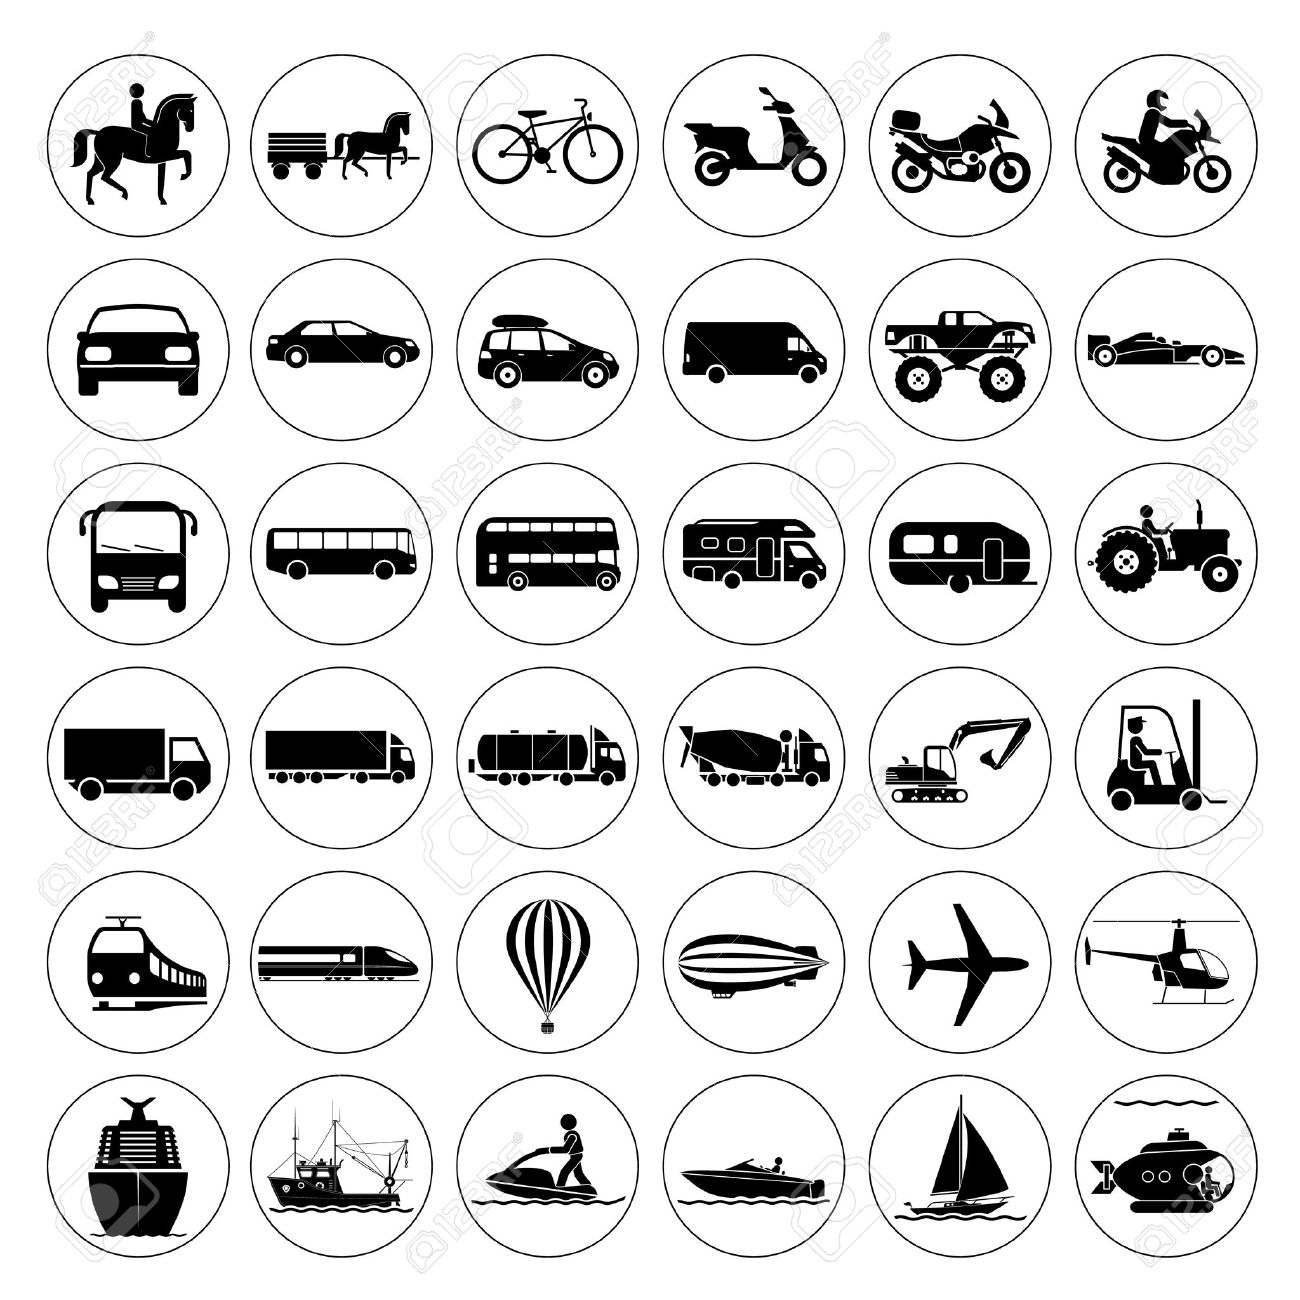 Collection of signs presenting different modes of transport on land, water and in the air. Vintage and modern means of transportation. Transportation icons. Stock Vector - 43945325